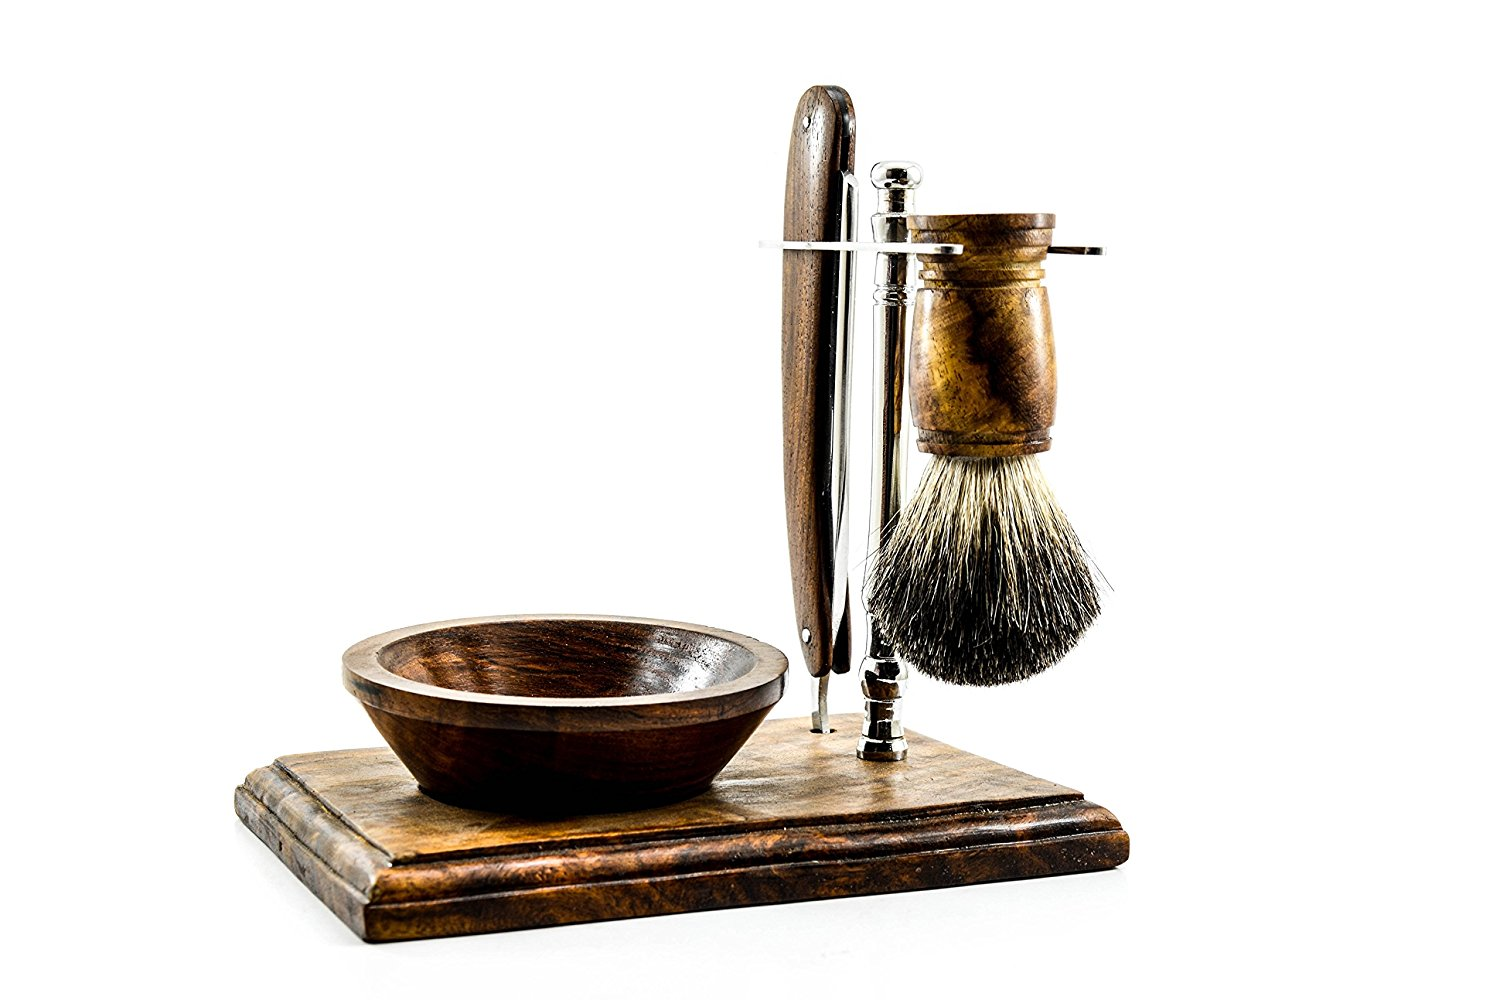 Straight Razor Shaving Kit By Cutlass | Straight Razor | Shaving Brush | Shaving Stand | Shaving Bowl | Rosewood | Stainless Steel | 100% Money Back Guarantee*